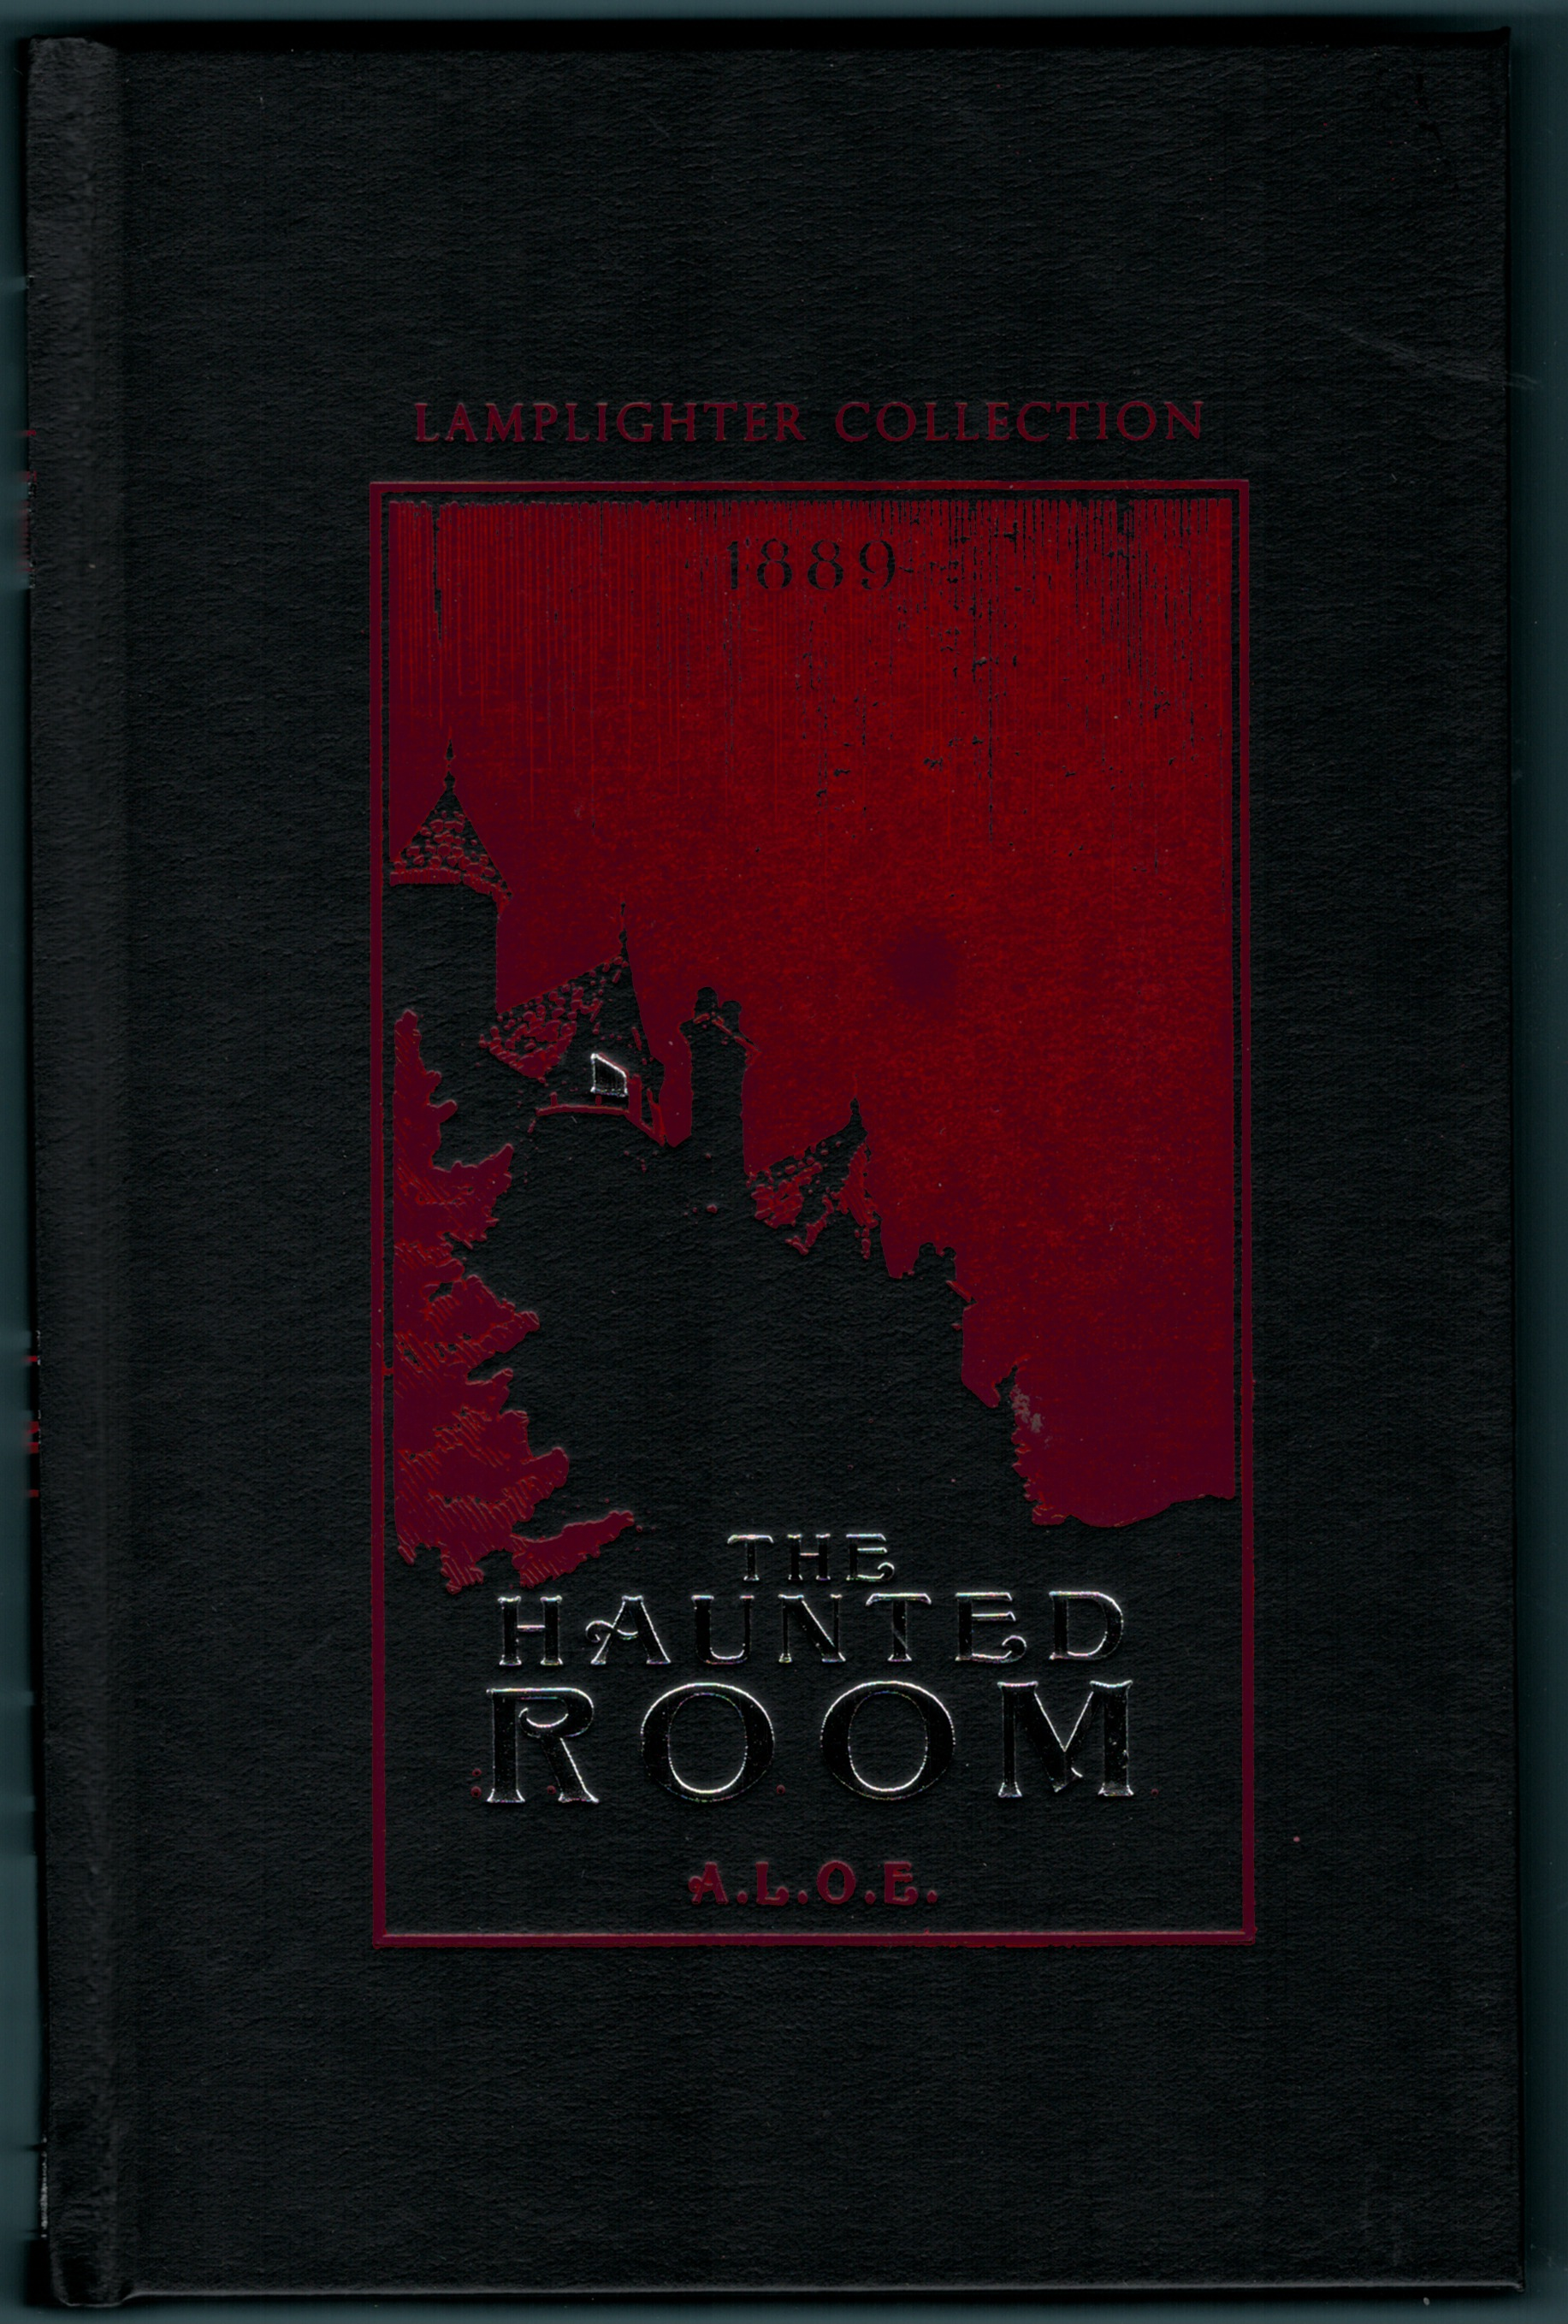 Damaged Haunted Room, The